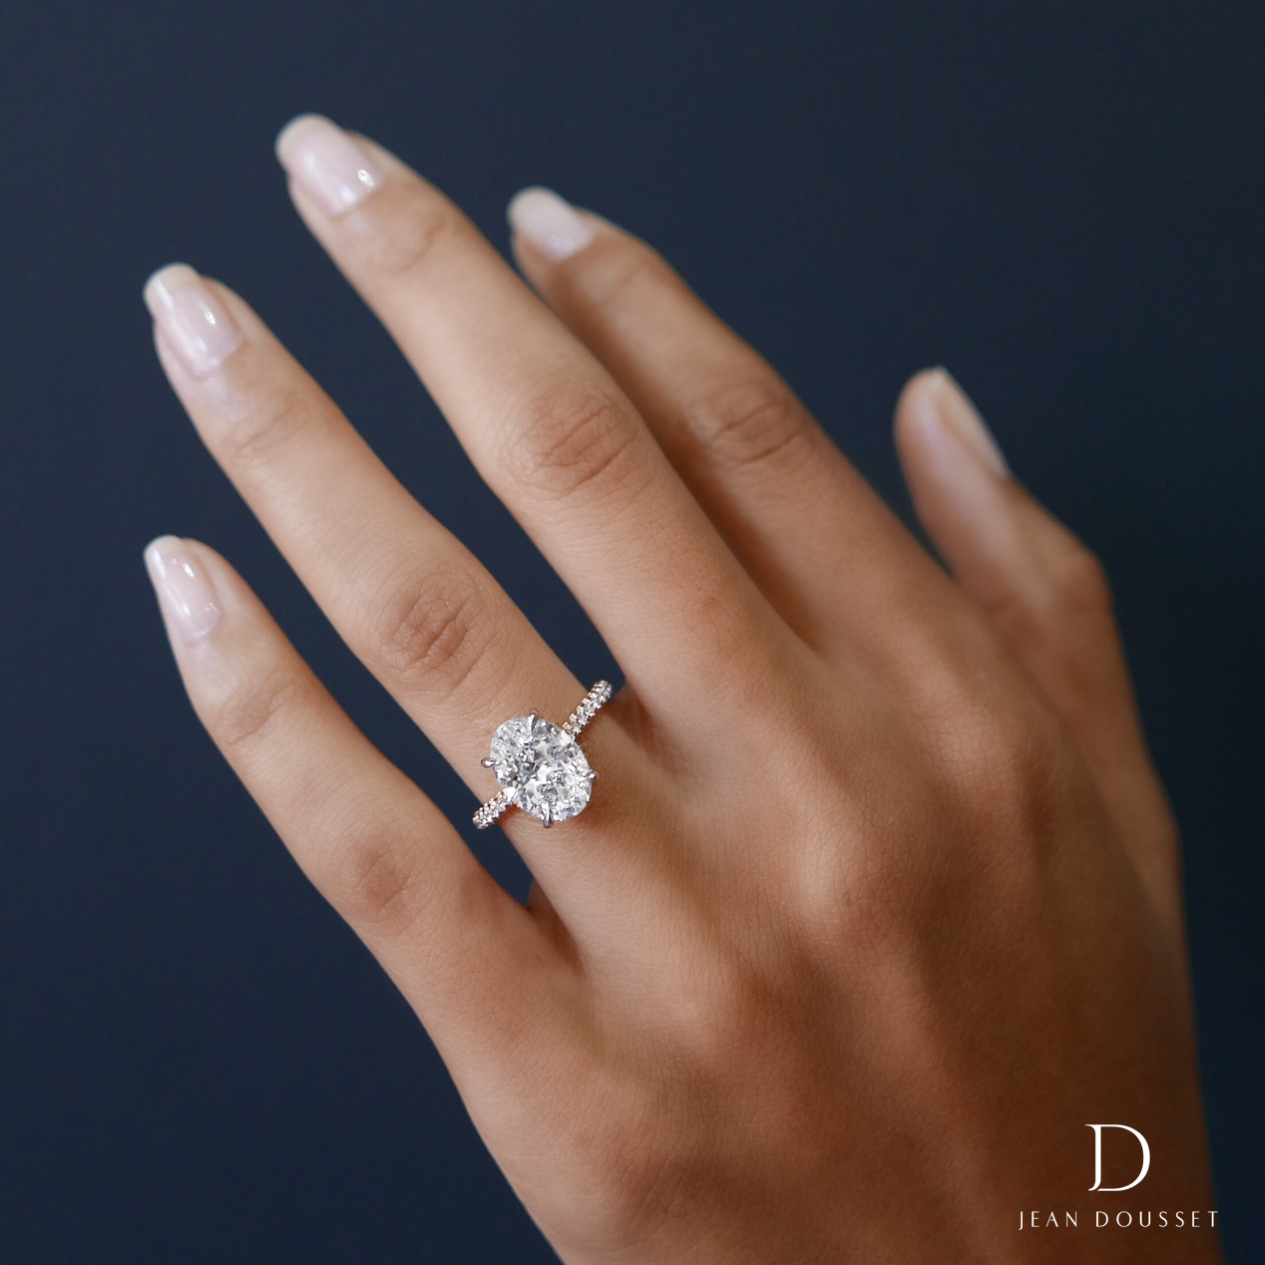 Luna Design Engagement Ring With Two Tones Of Metal And An In Oval Shaped Engagement Rings (View 12 of 25)